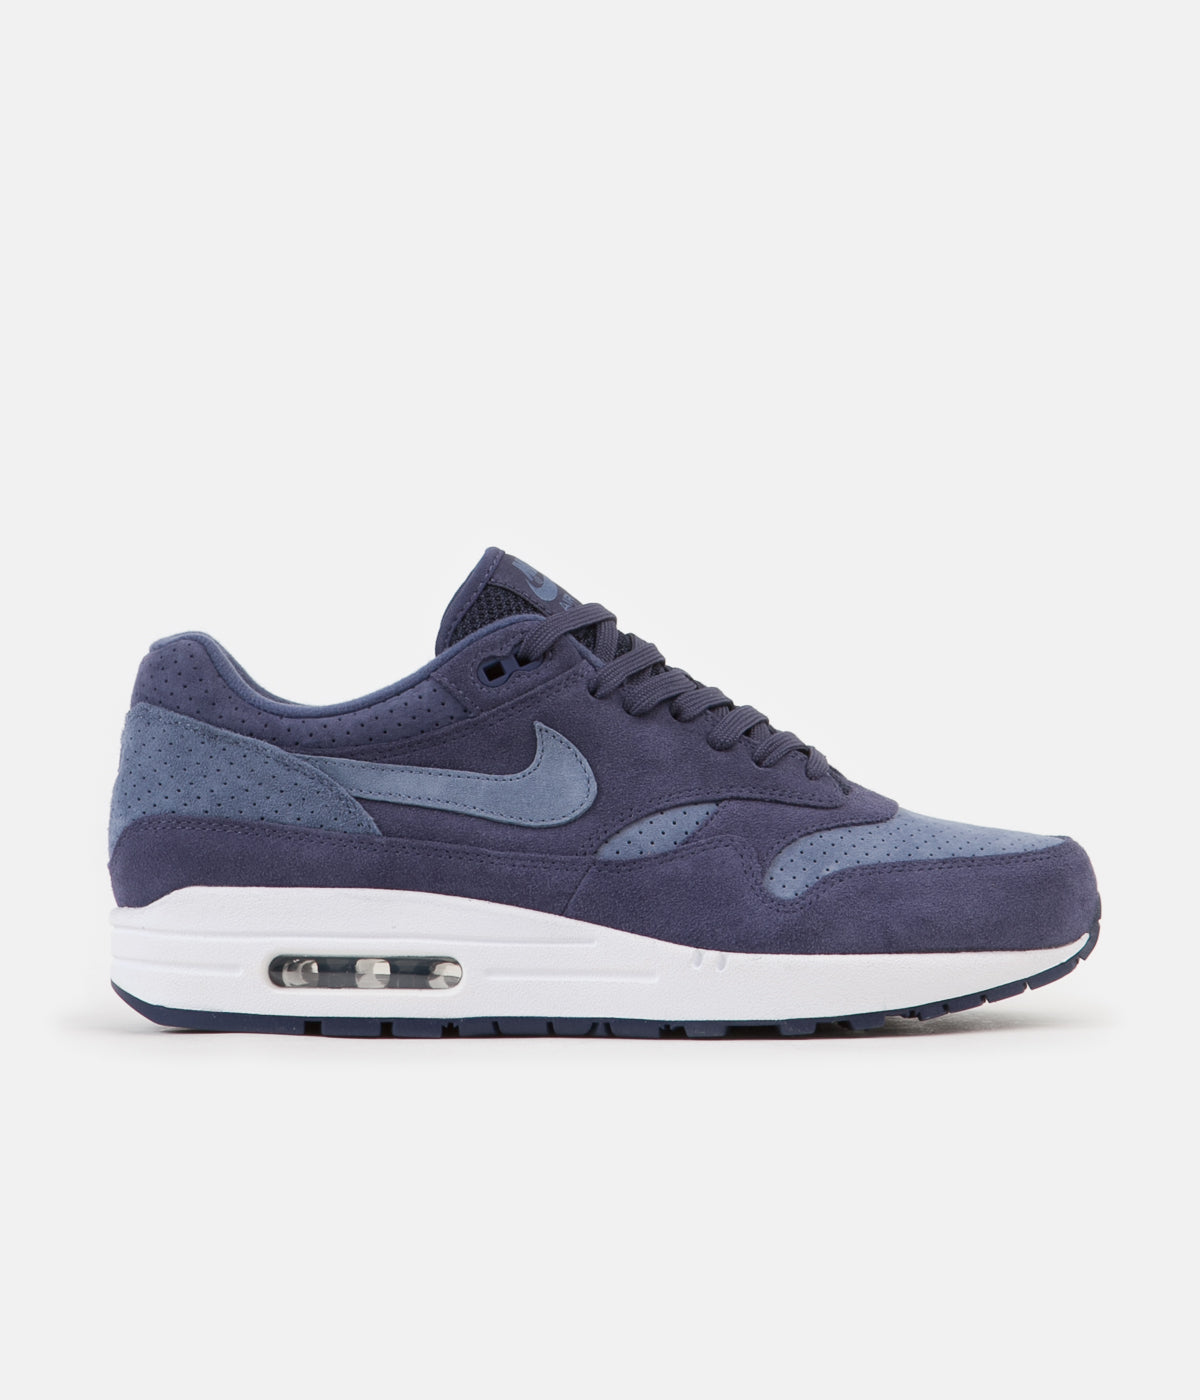 Nike Air Max 1 Premium Shoes Neutral Indigo Diffused